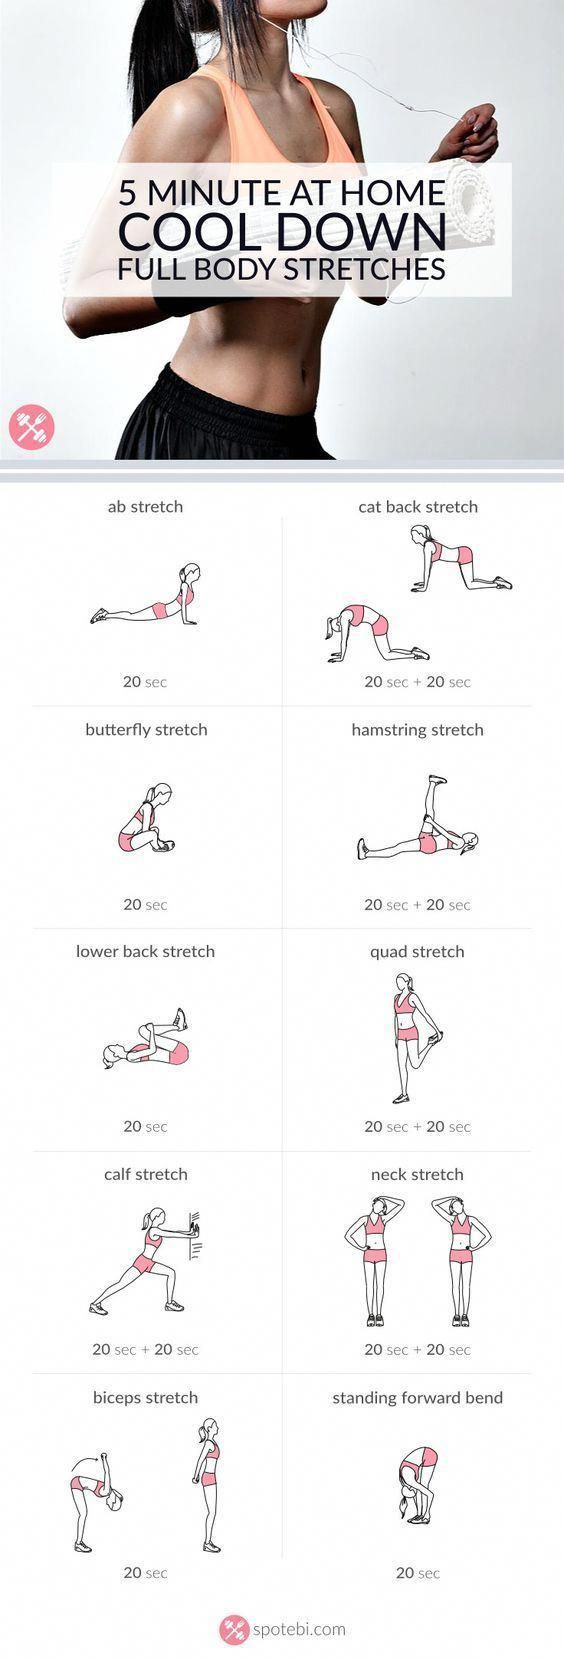 Quick Morning Workout Routines Everybody Can Make Time For  #fitnesstips #workouttips #healthy #exer...